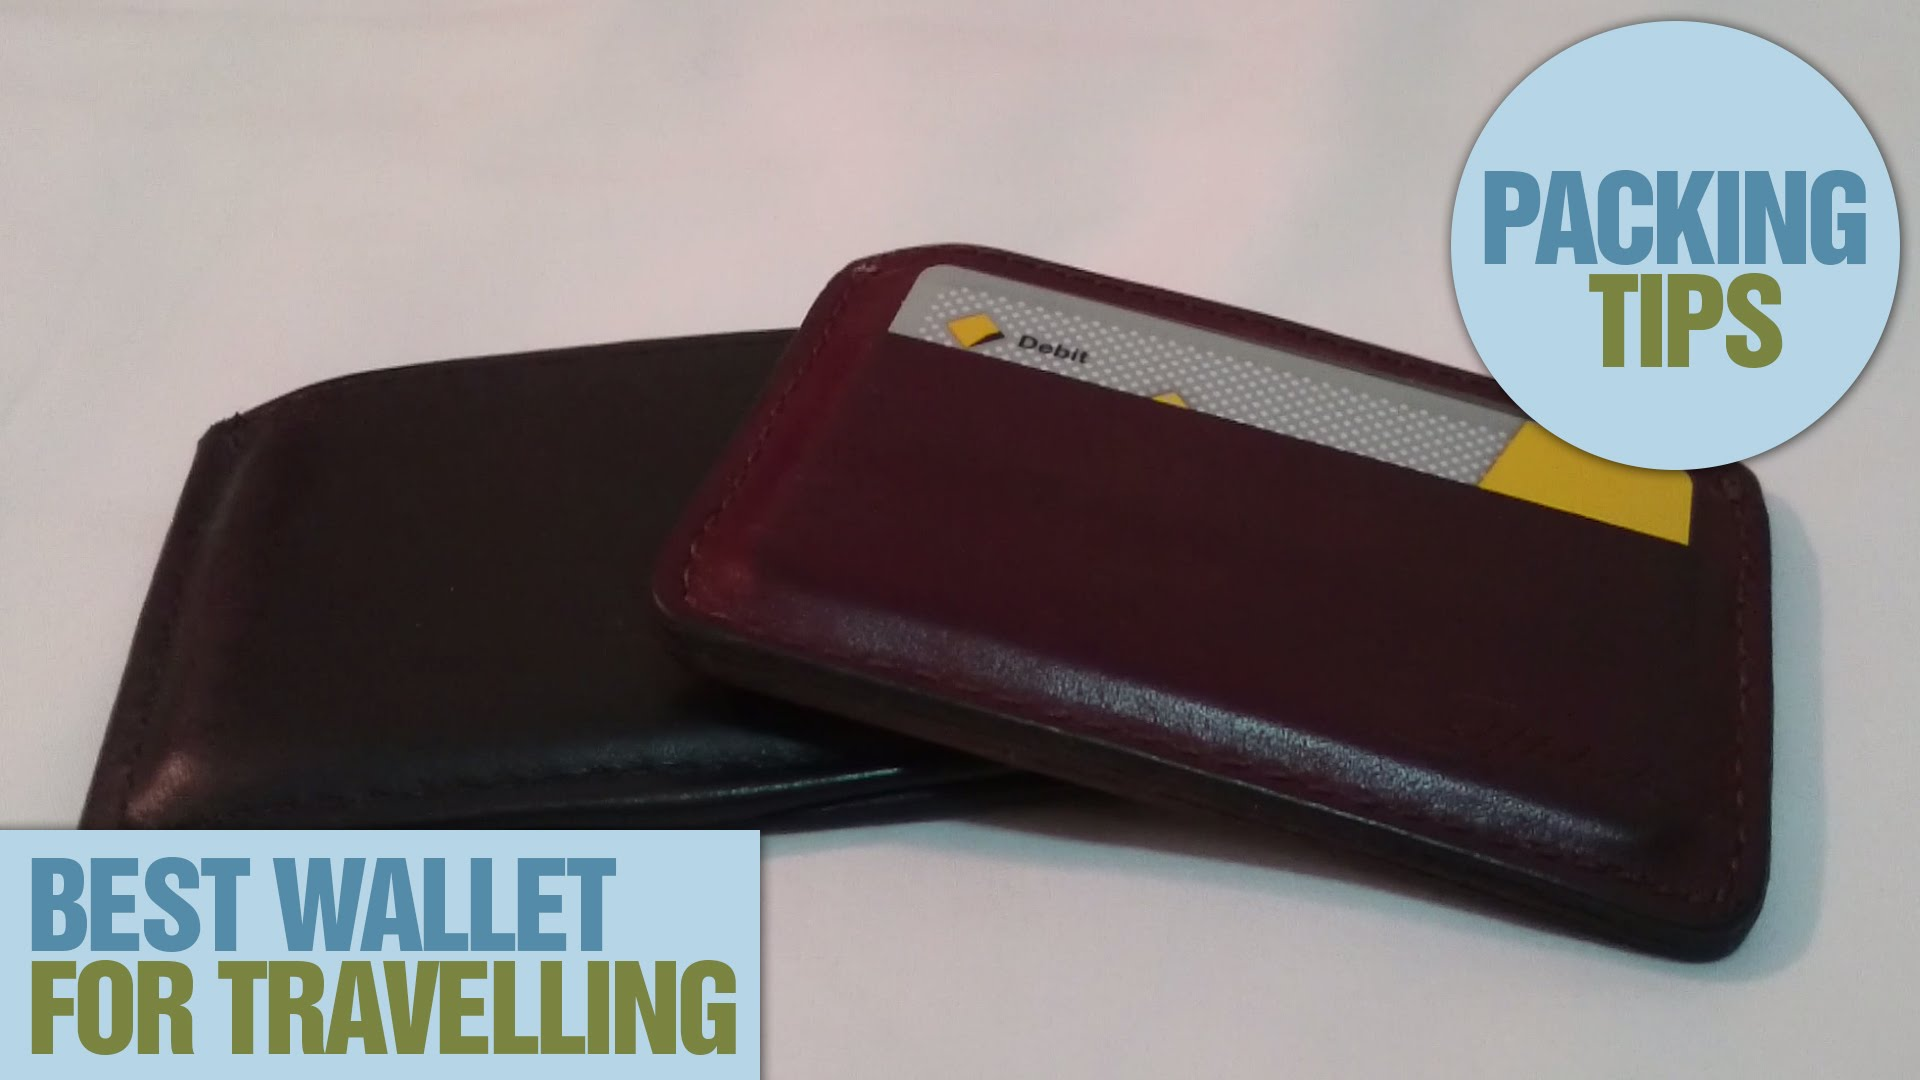 Packing-Tips-Best-Travel-Wallet-Slimmy-vs-Saddleback